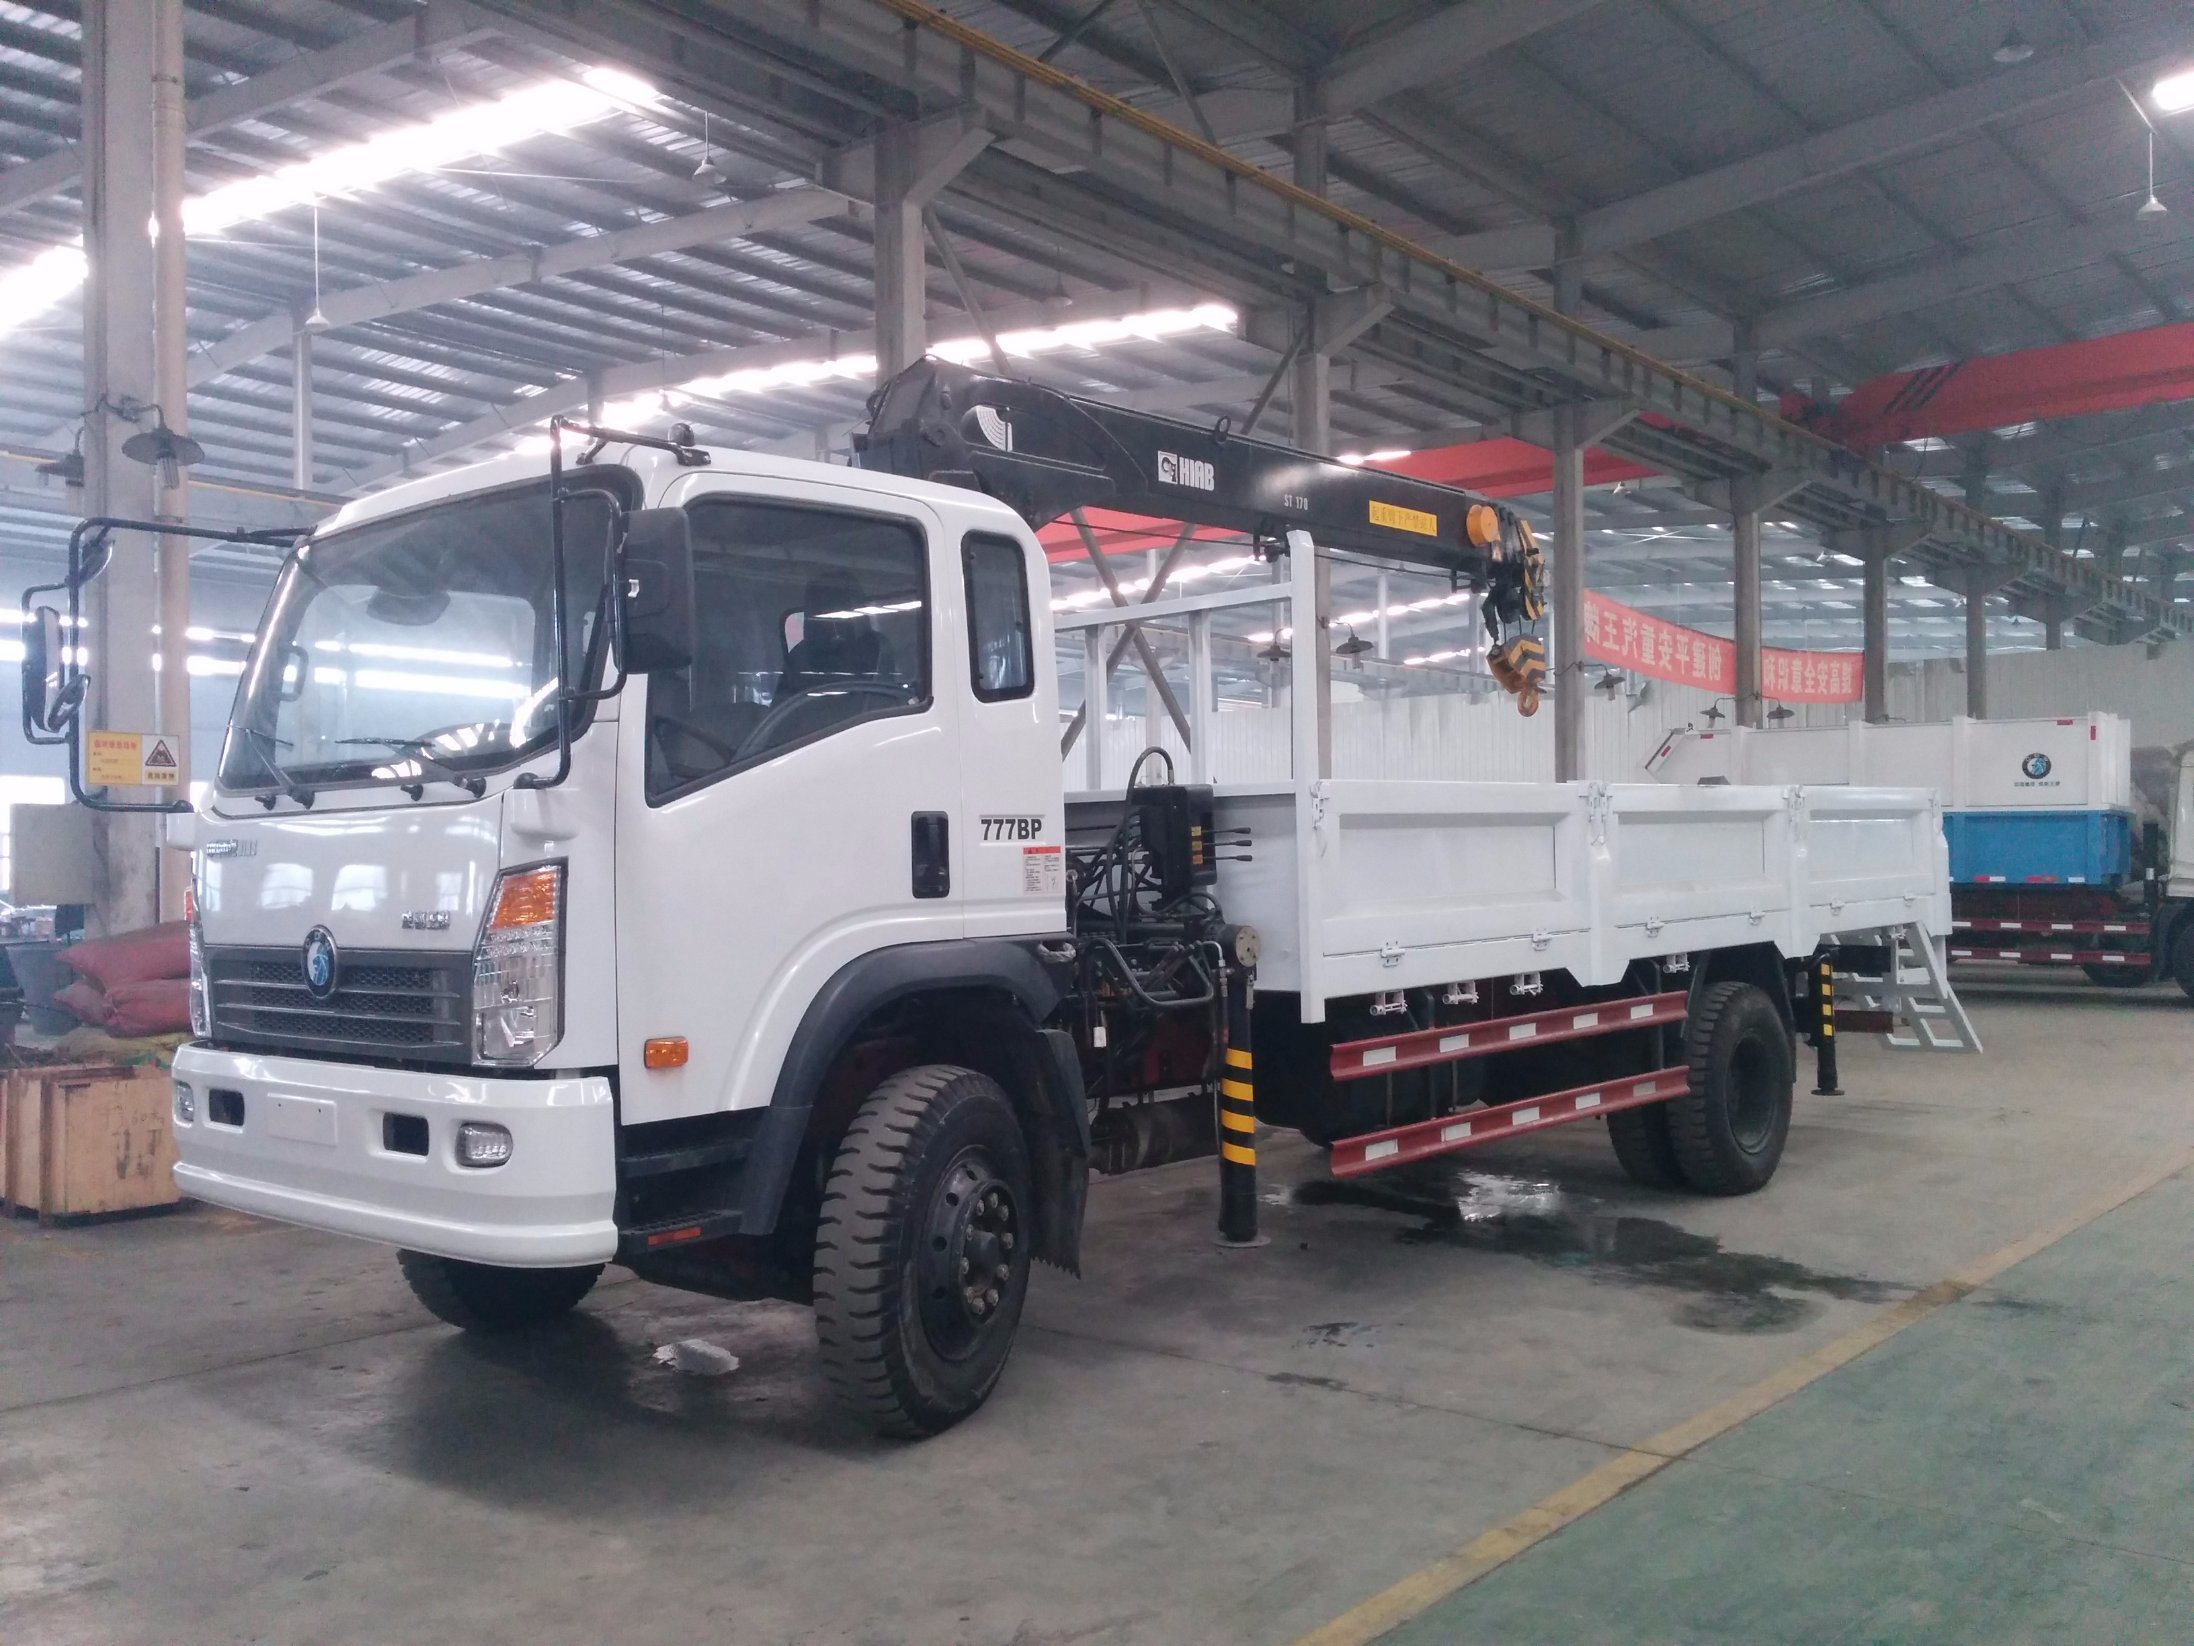 Crane Truck For Sale >> China Sinotruk 8t Crane Truck 4x2 Mounted Truck Crane For Sale